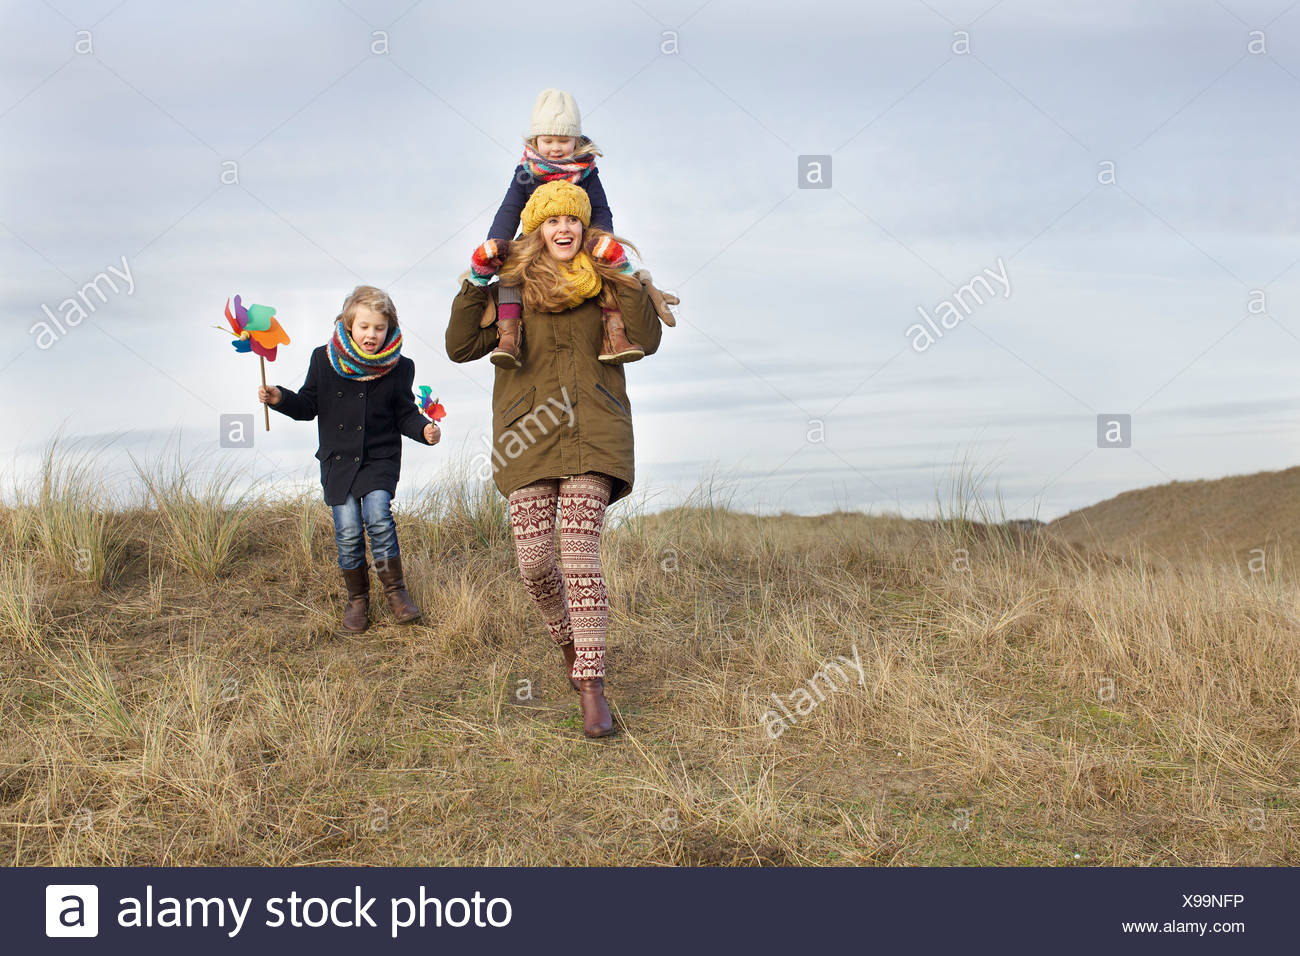 Smiling young woman with daughter and son at coast Photo Stock